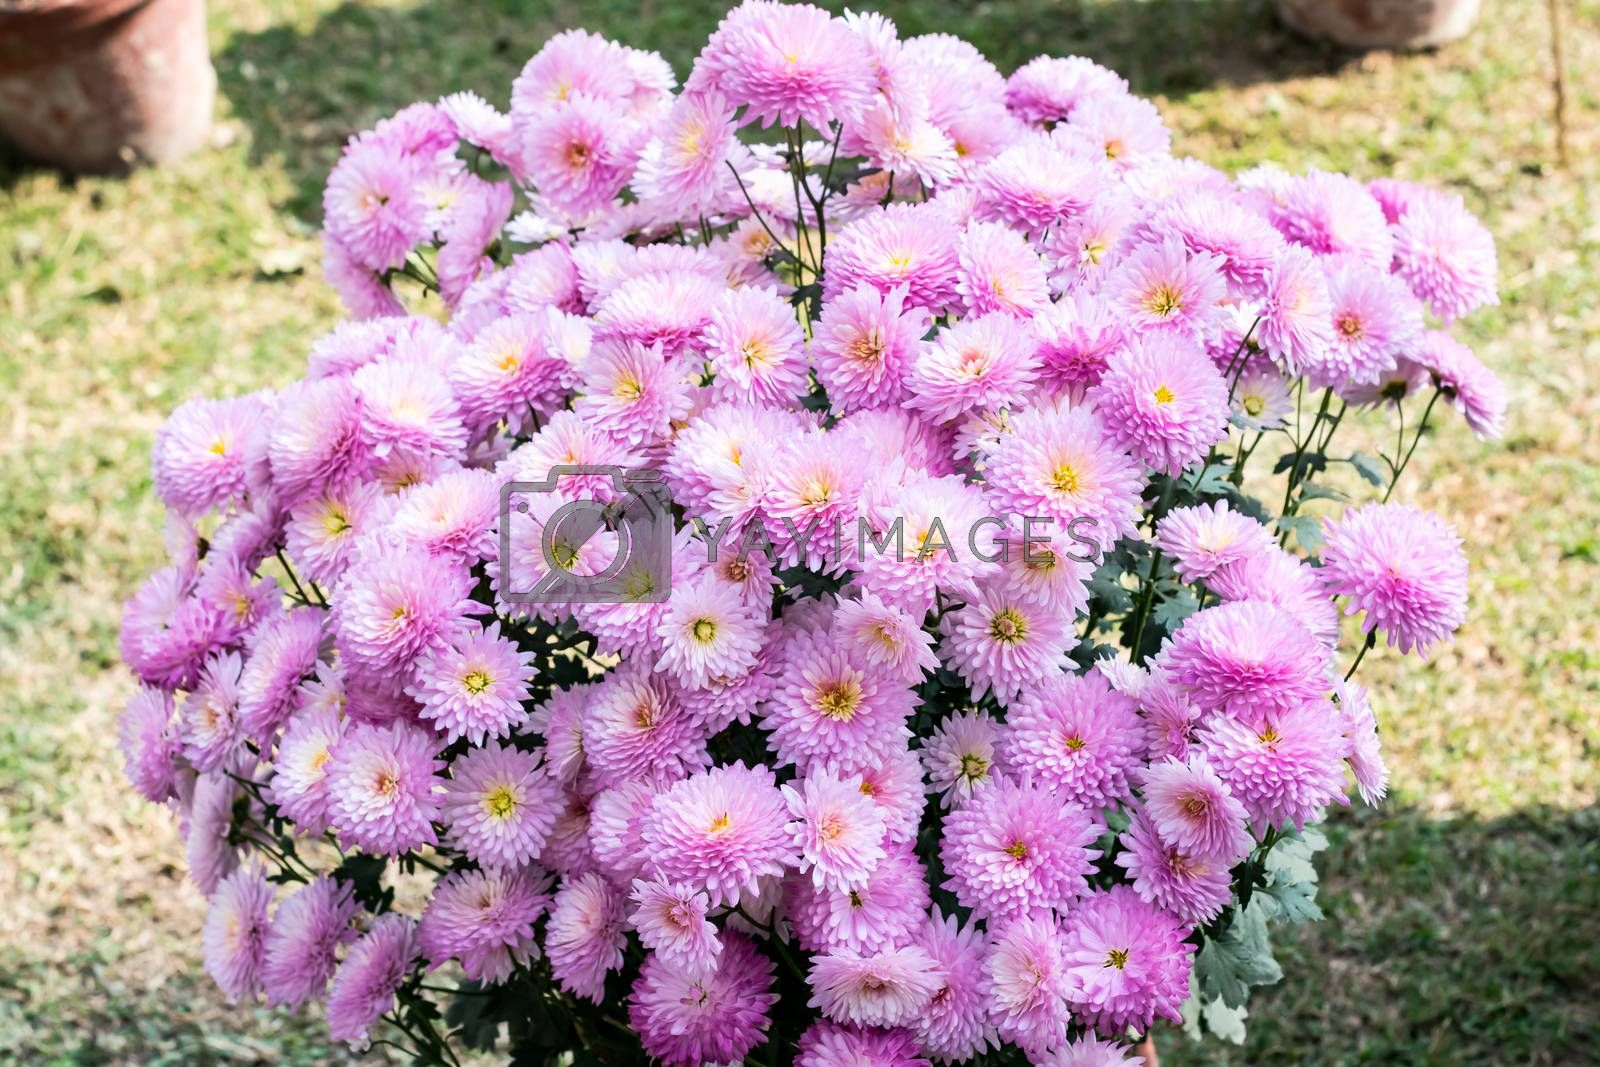 Pink dahlia flower plant, a genus of bushy, tuberous, herbaceous perennial plants growing in sunlight. It is a sun loving plant Blooms in early spring to late summer. Popular for gardens and bouquets.